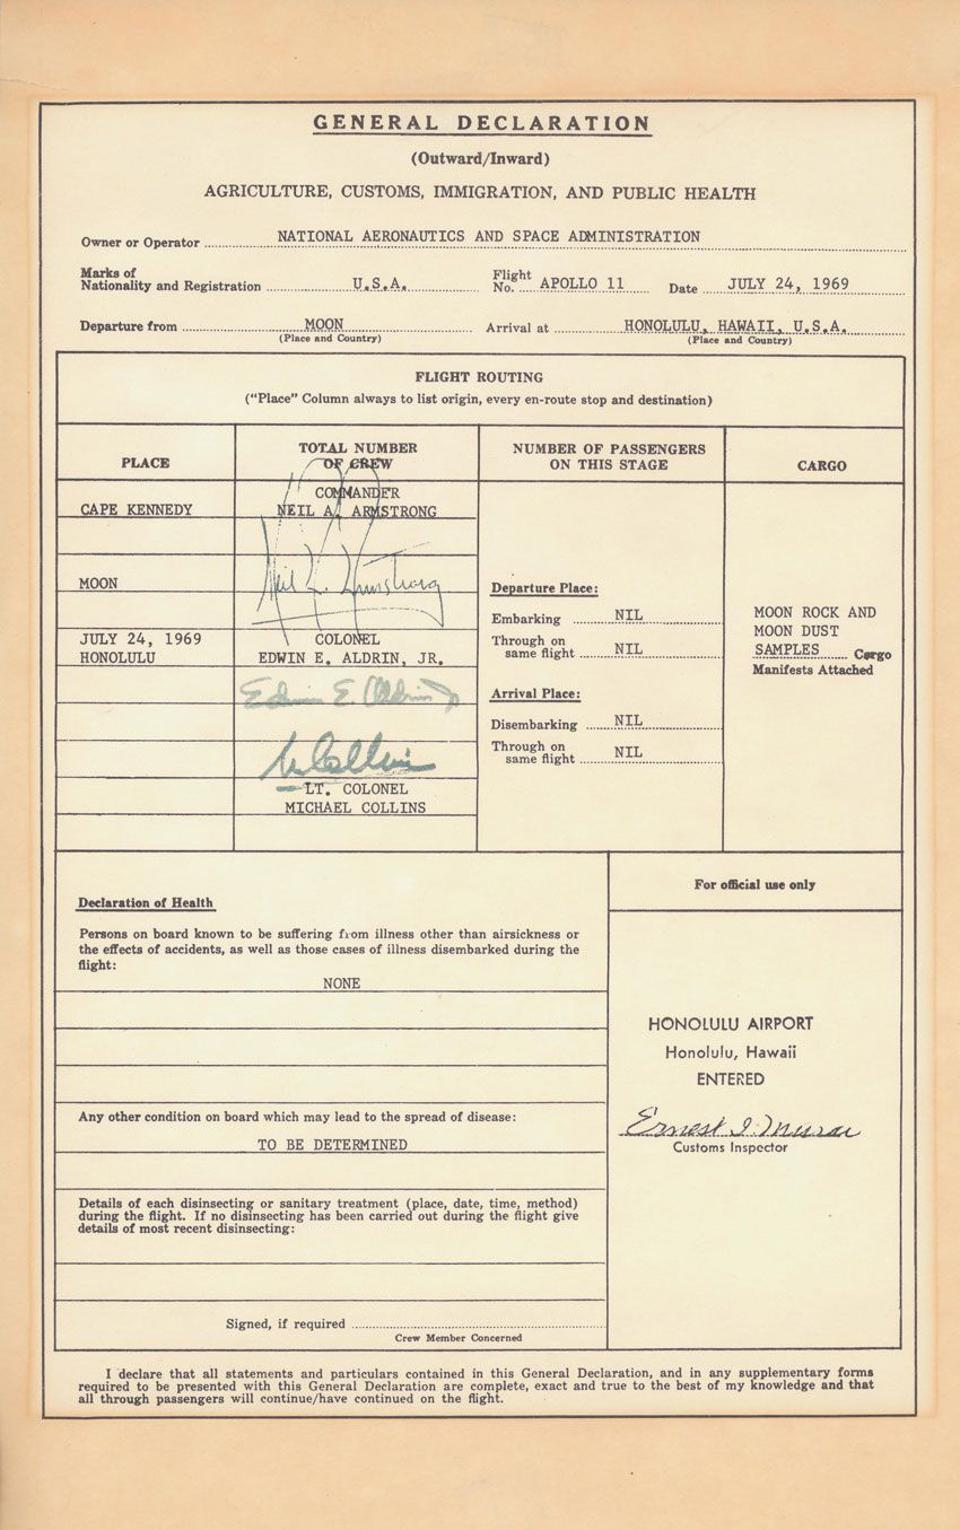 The customs form filled out by the Apollo 11 astronauts returning from the Moon.